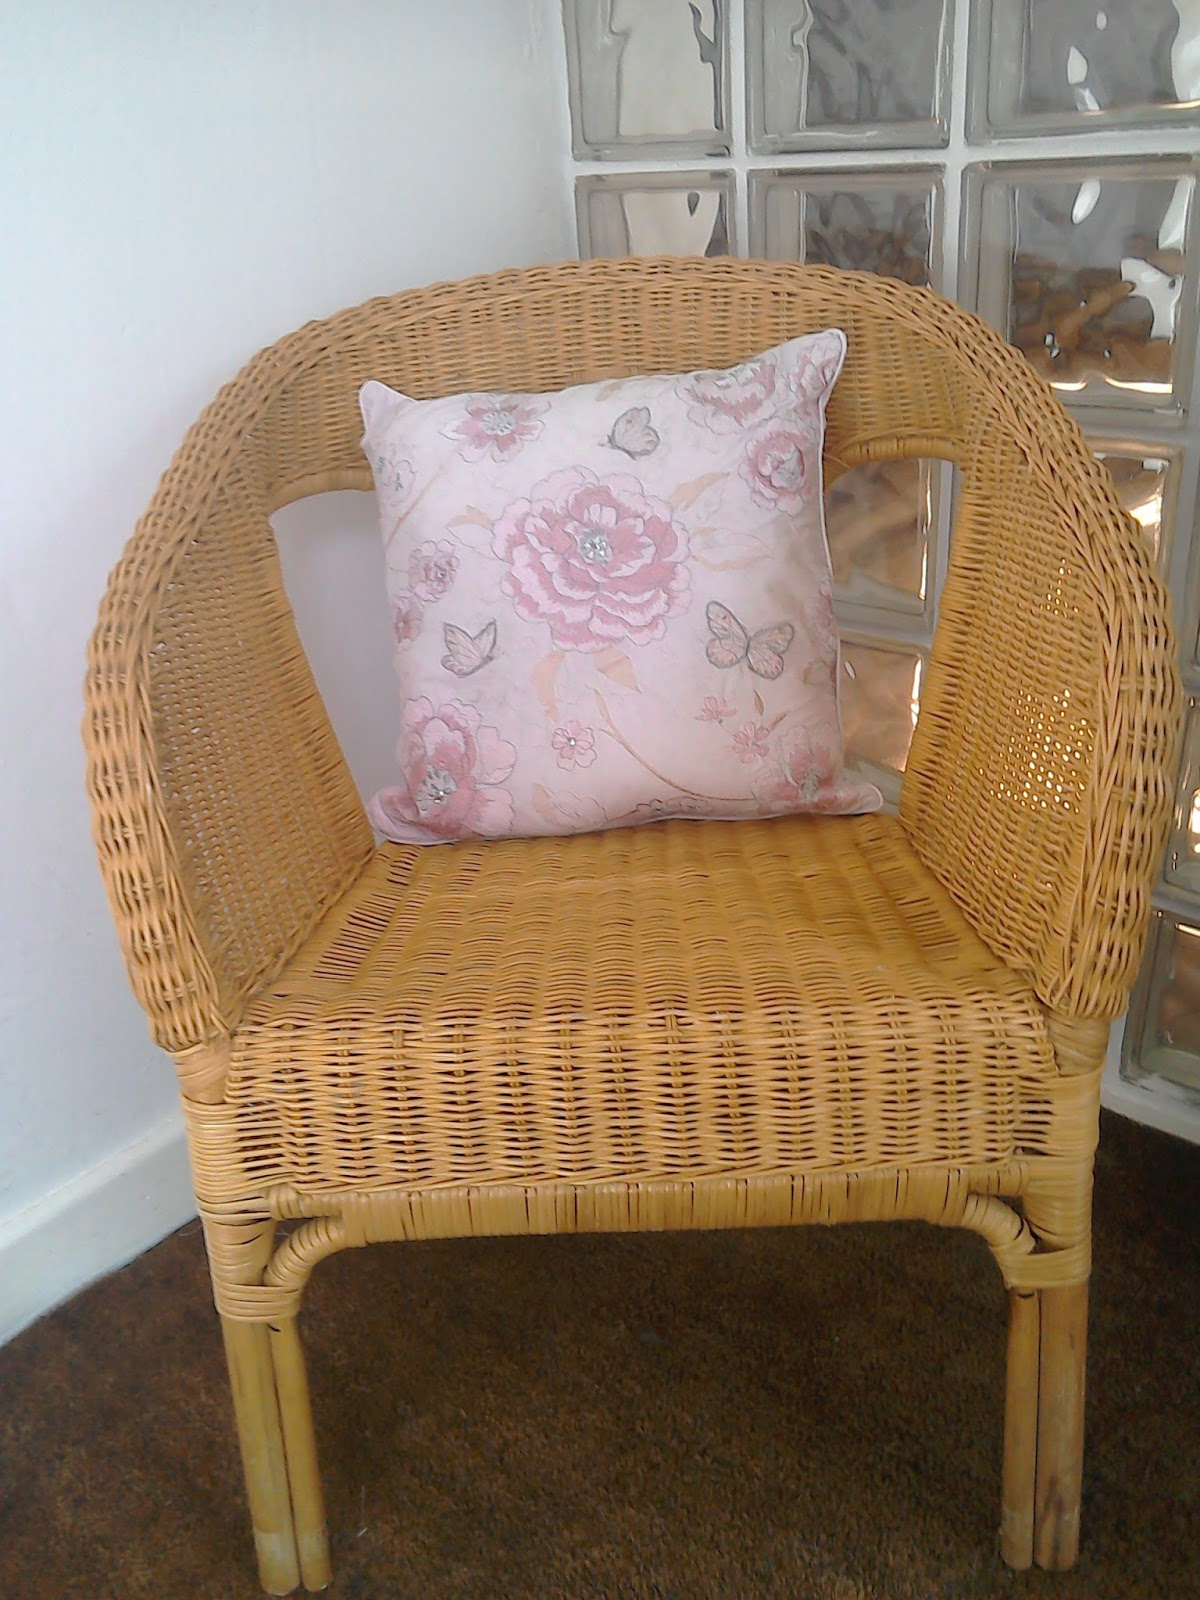 SIMPLY IN STITCHES: Shabby chic new look for old wicker chair